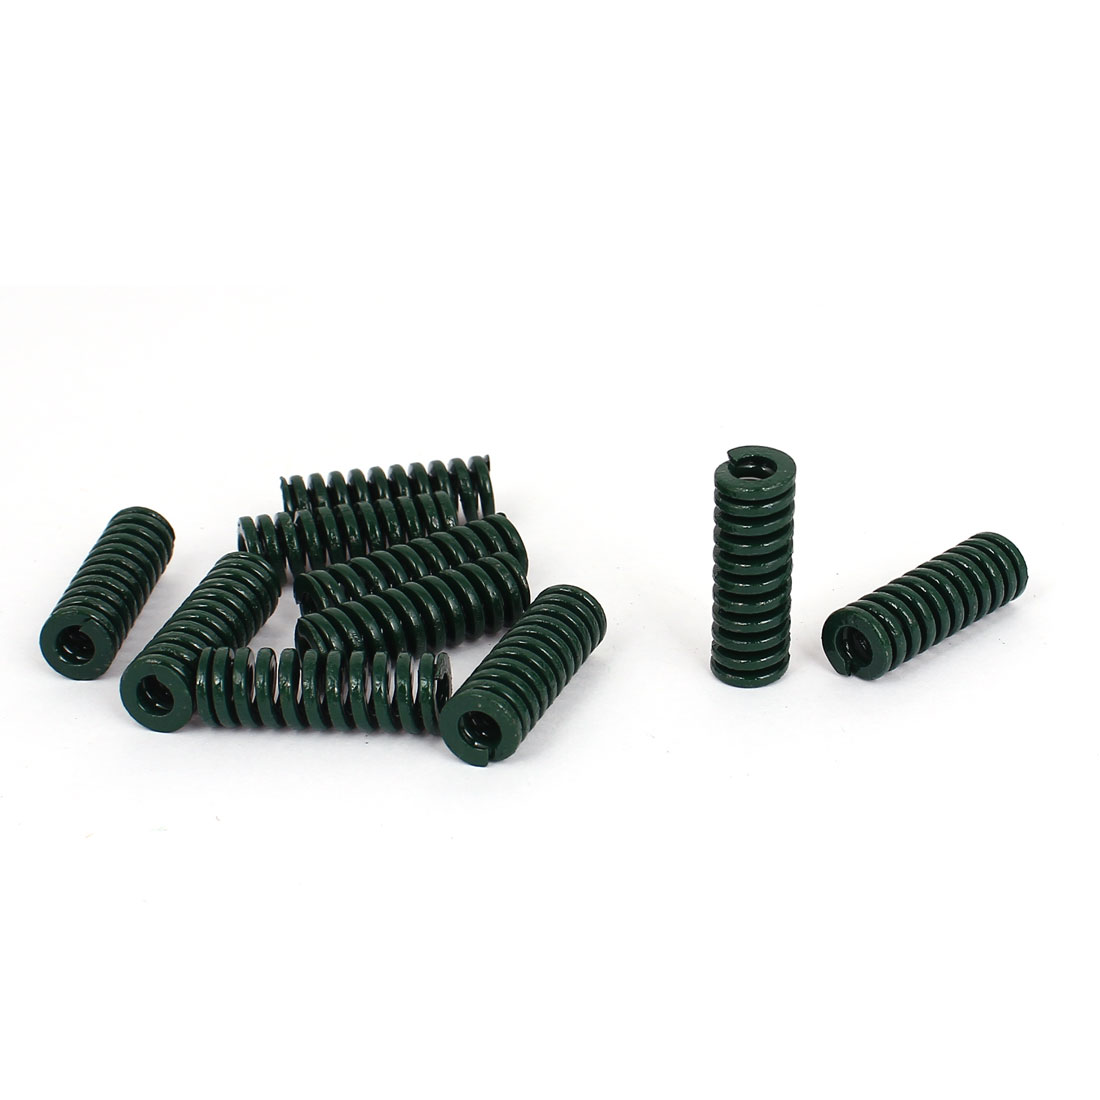 10mm OD 30mm Long Heavy Load Stamping Compression Mold Die Spring Green 10pcs